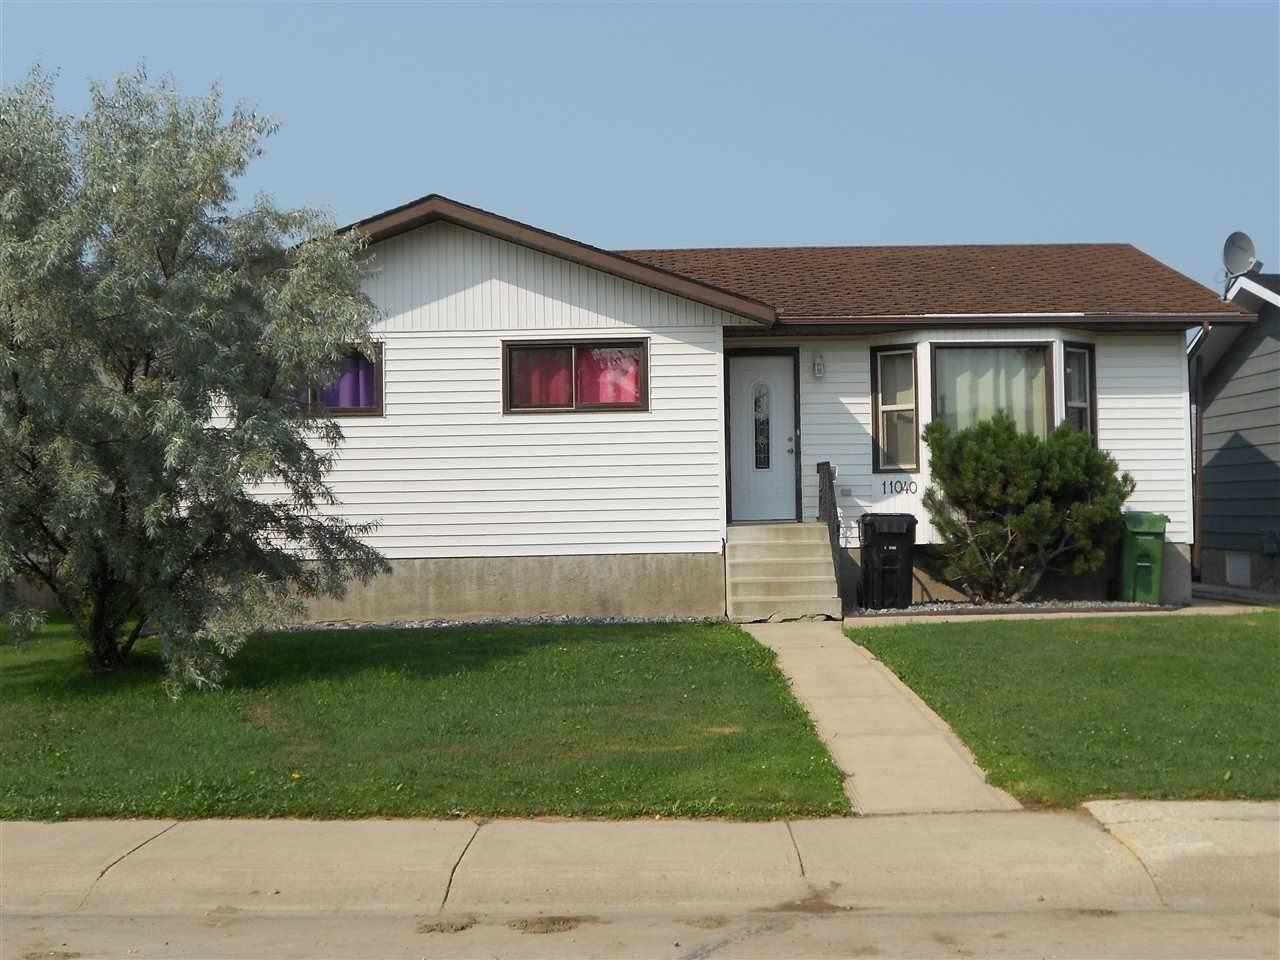 Main Photo: 11040 104 Street: Westlock House for sale : MLS®# E4212458